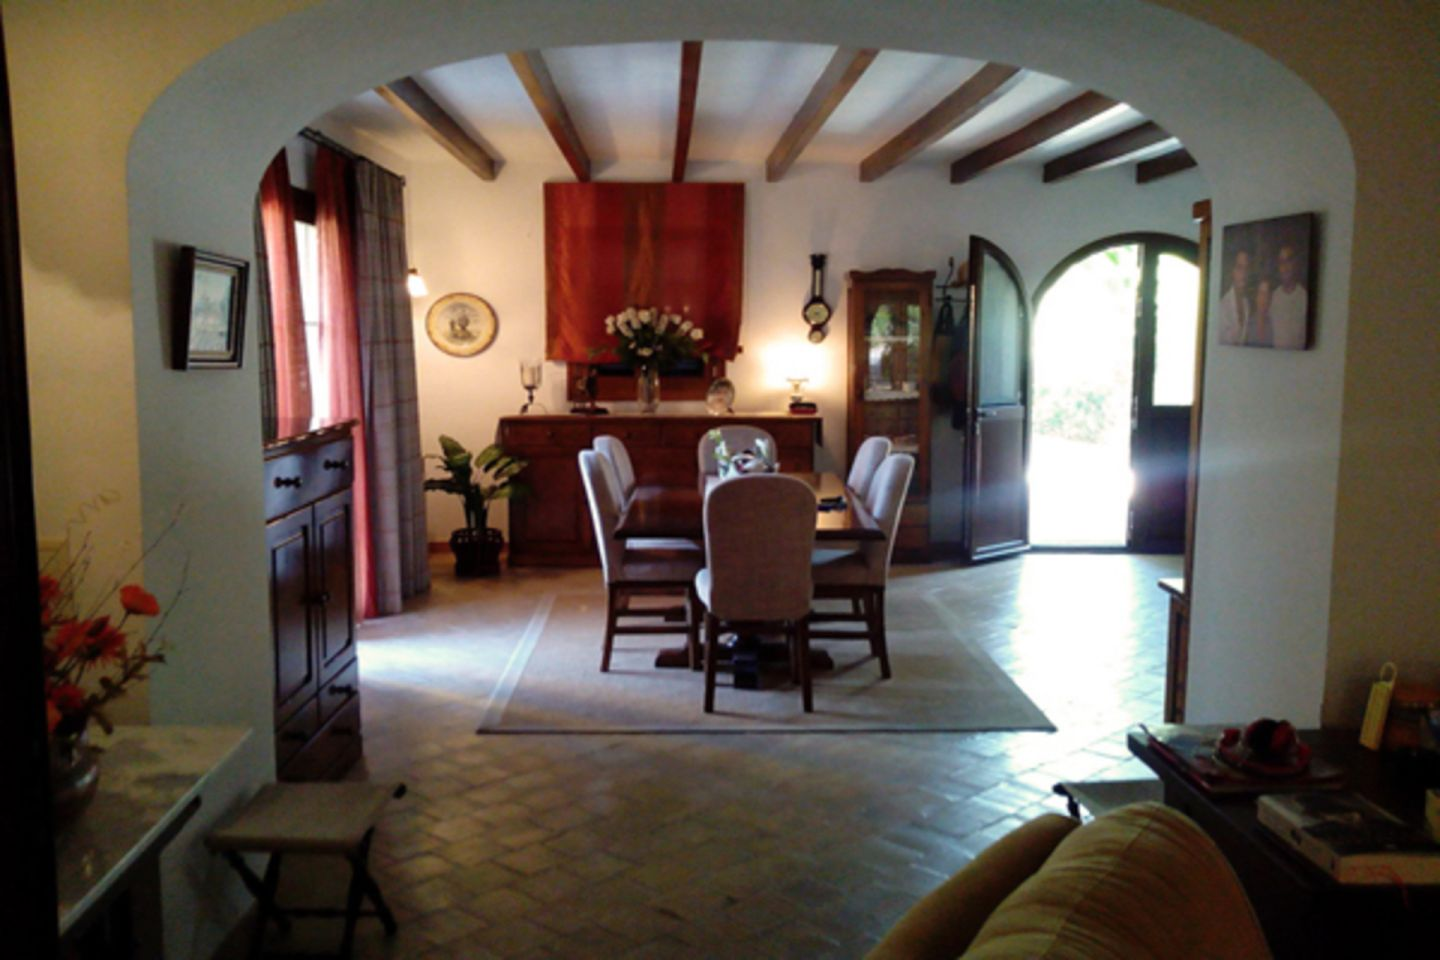 3 Bed Countryside House for sale in POLLENSA 1